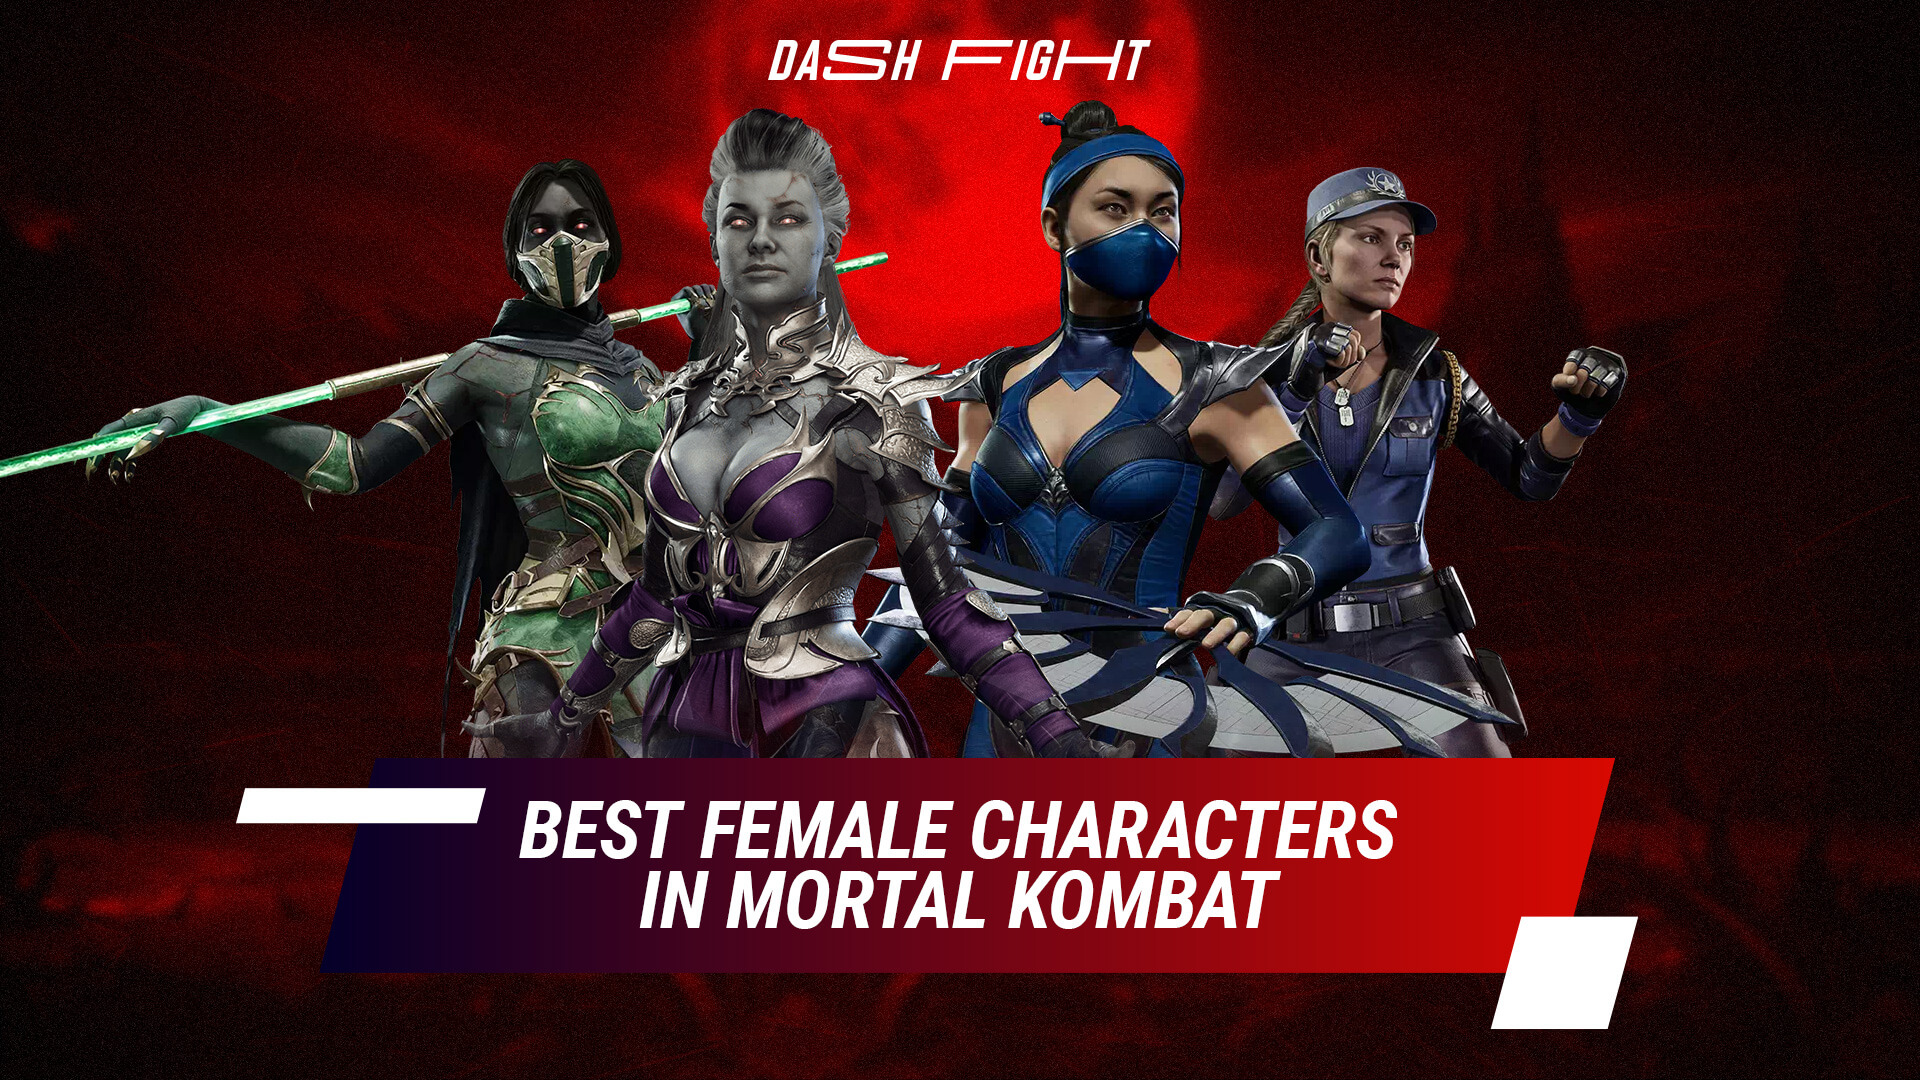 Best Female Characters in Mortal Kombat